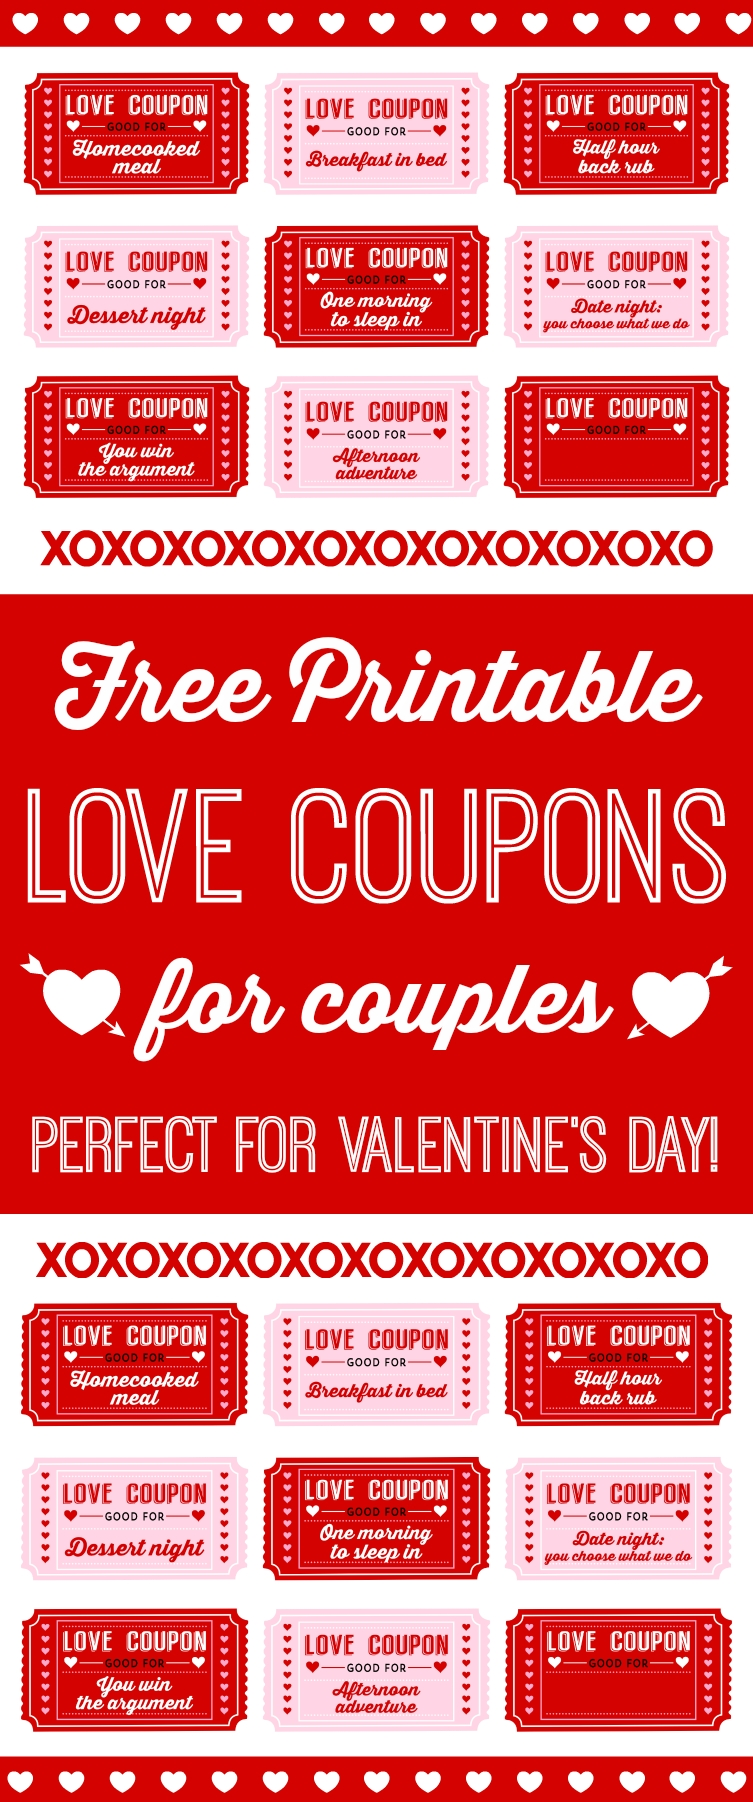 10 stylish cute coupon ideas for boyfriend free printable love coupons for couples on valentines day